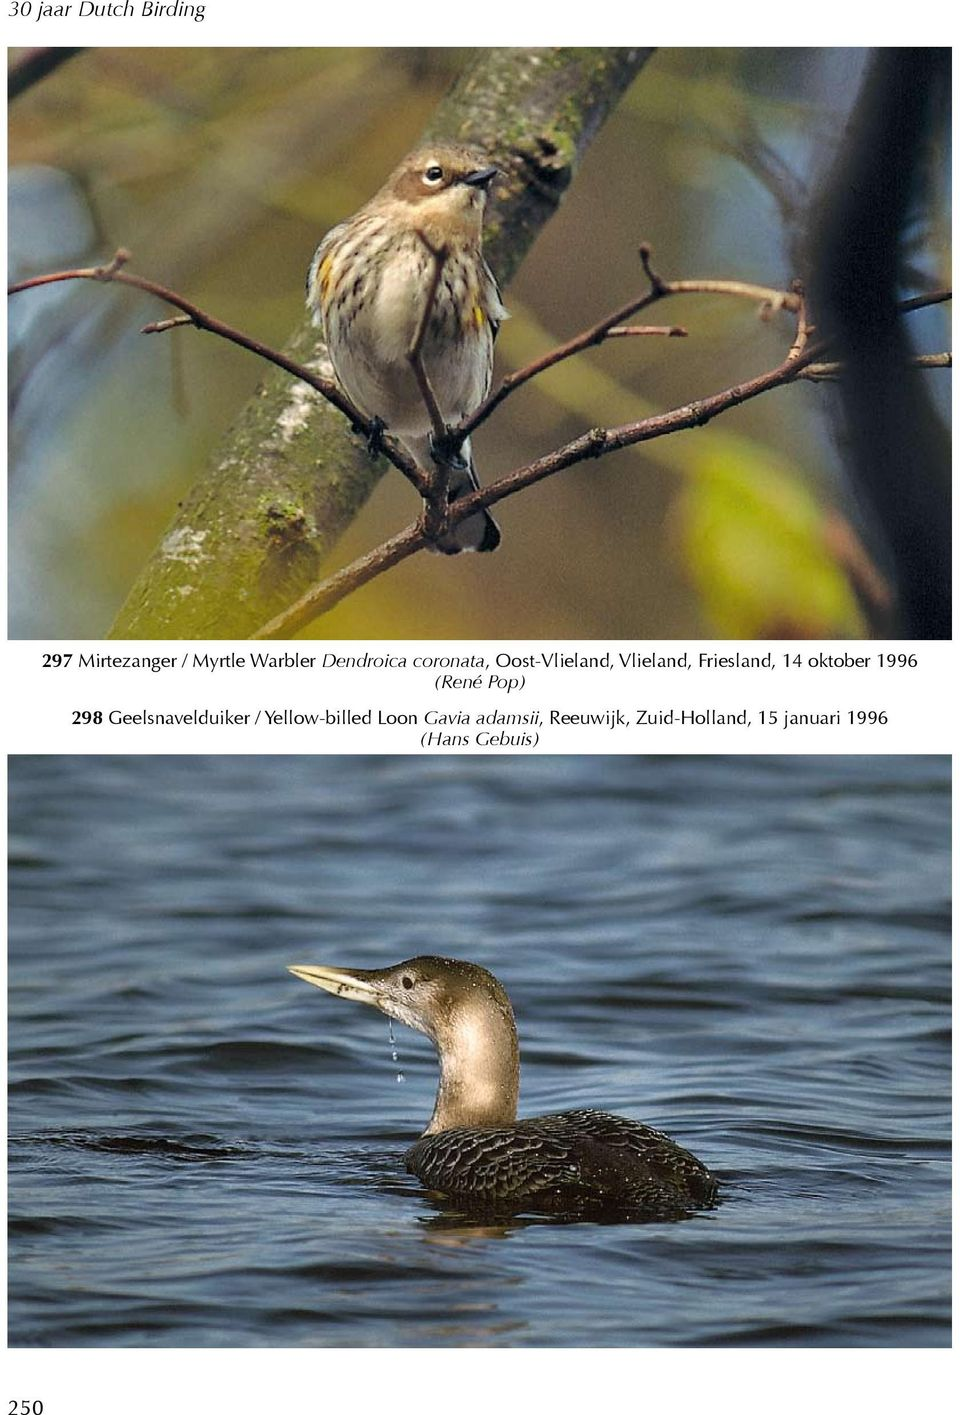 Pop) 298 Geelsnavelduiker / Yellow-billed Loon Gavia